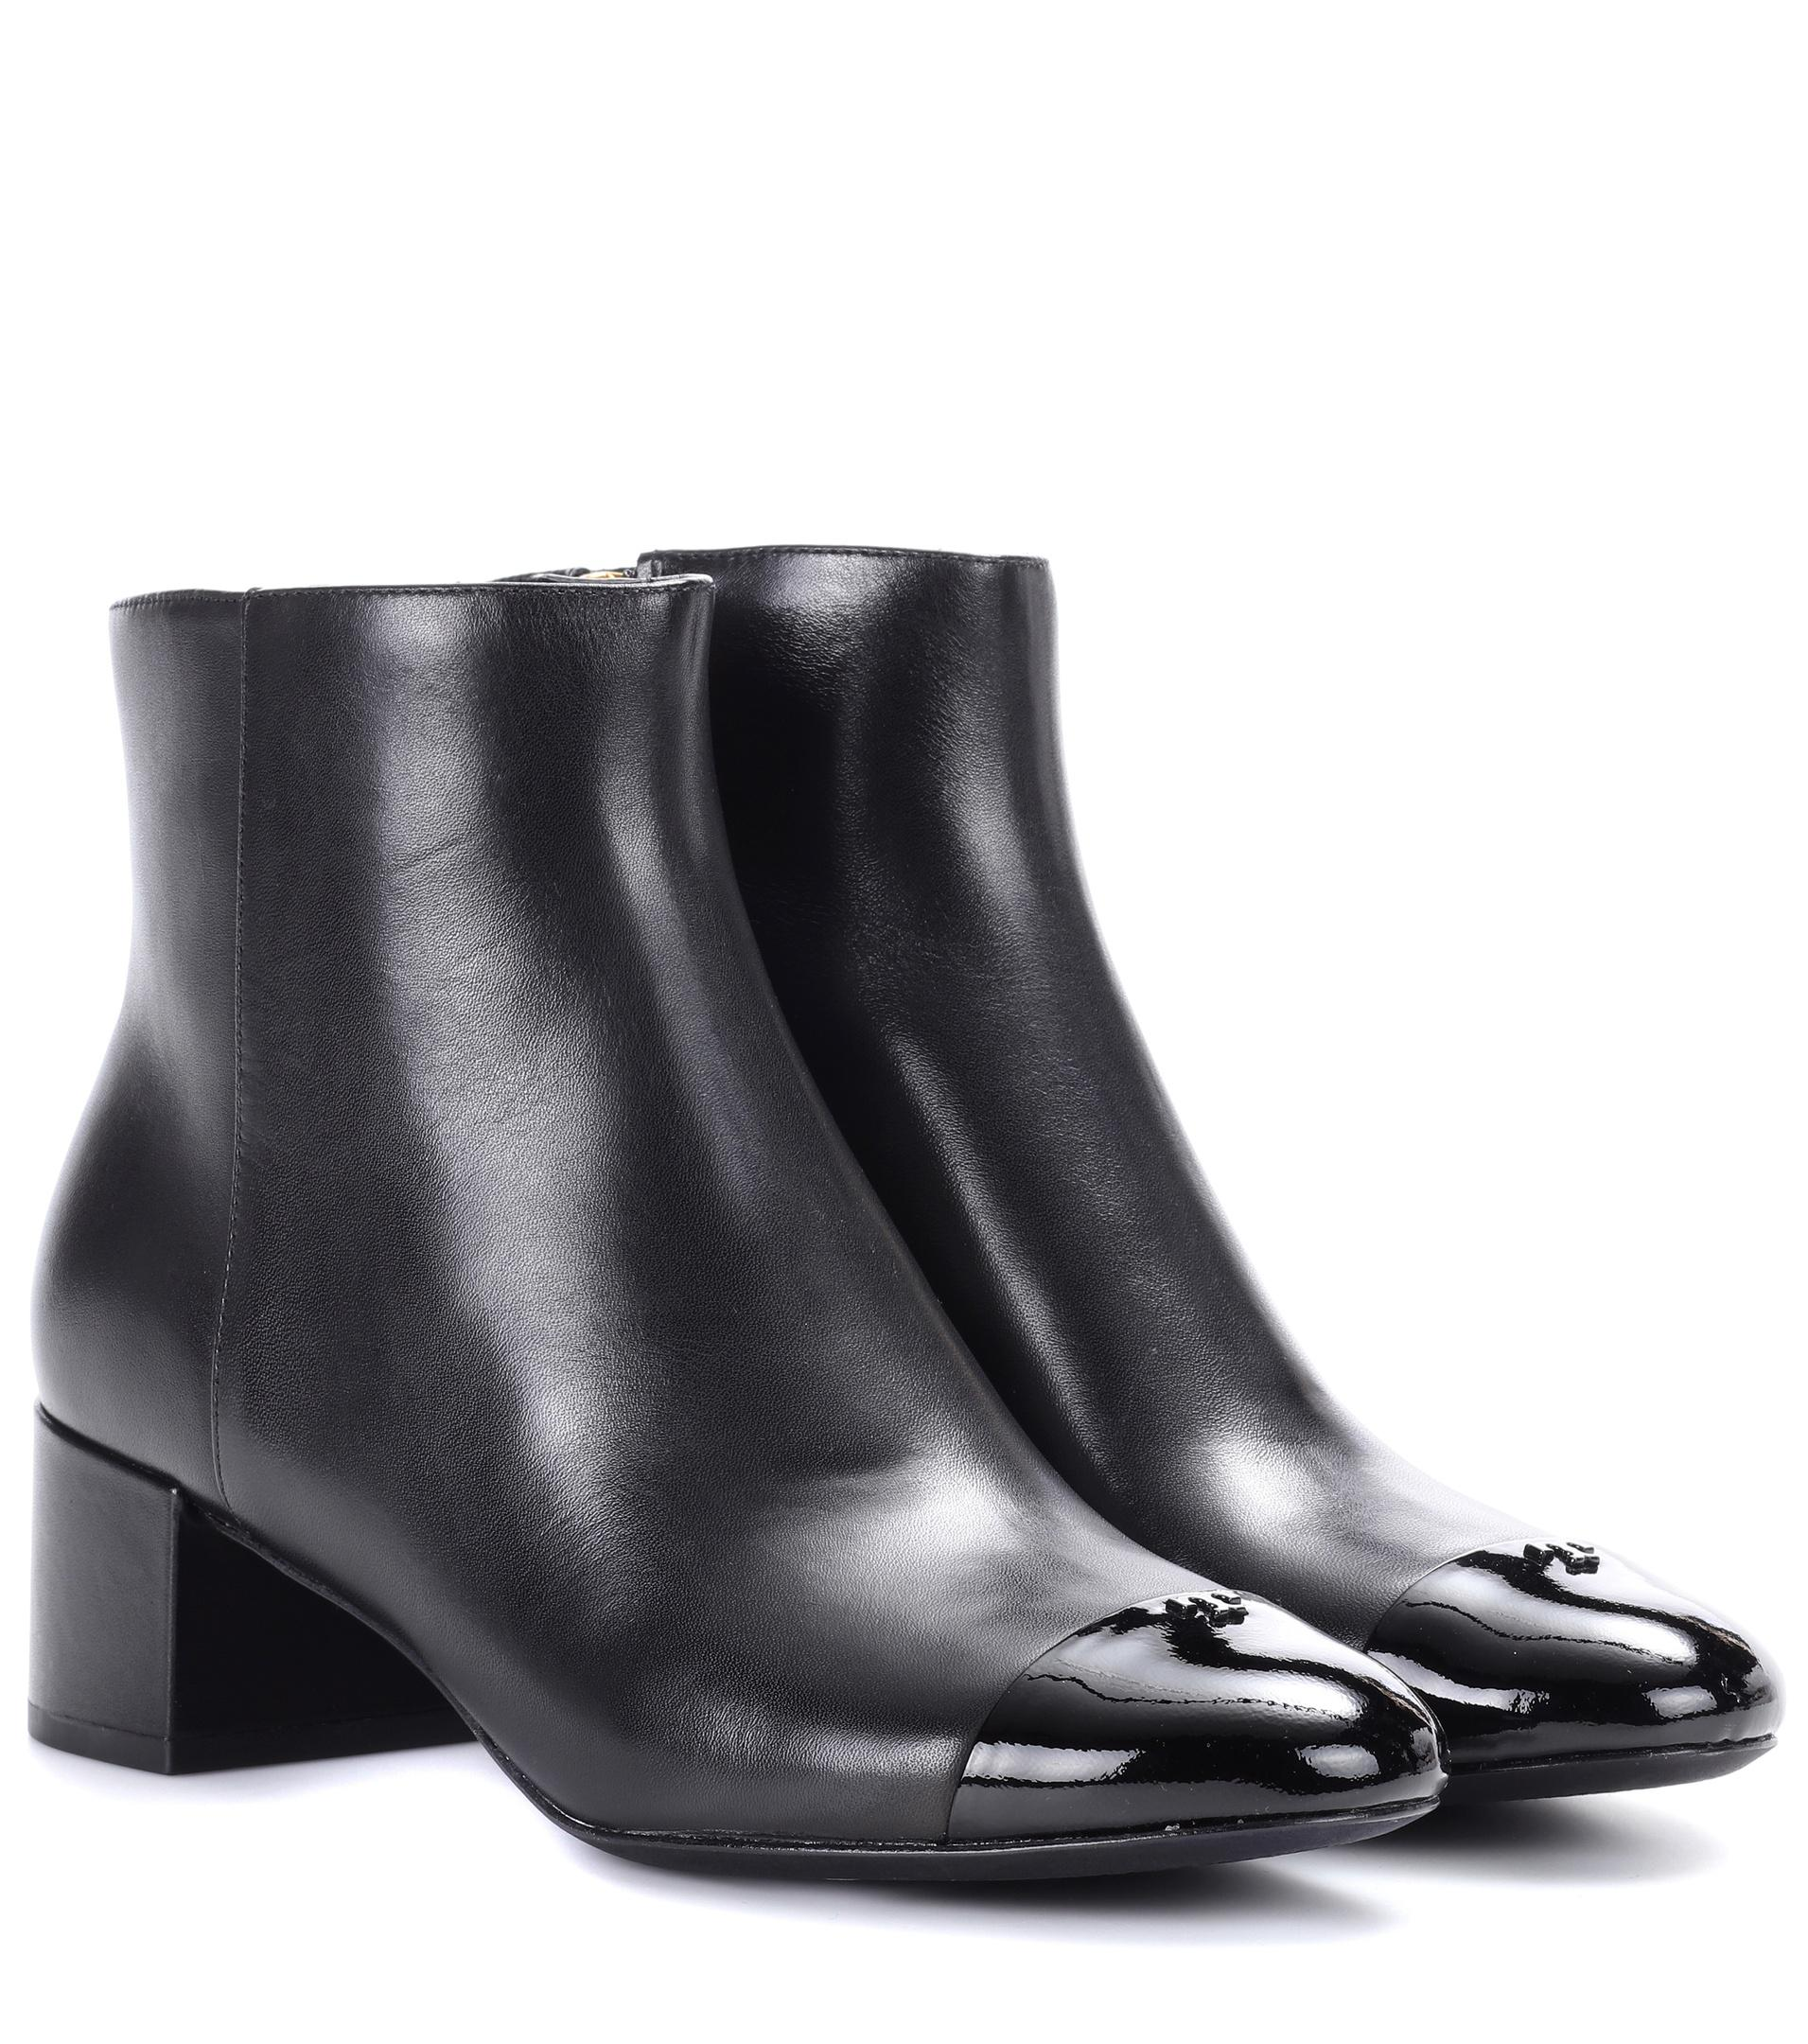 ffc84811947e Lyst - Tory Burch Shelby Leather Ankle Boots in Black